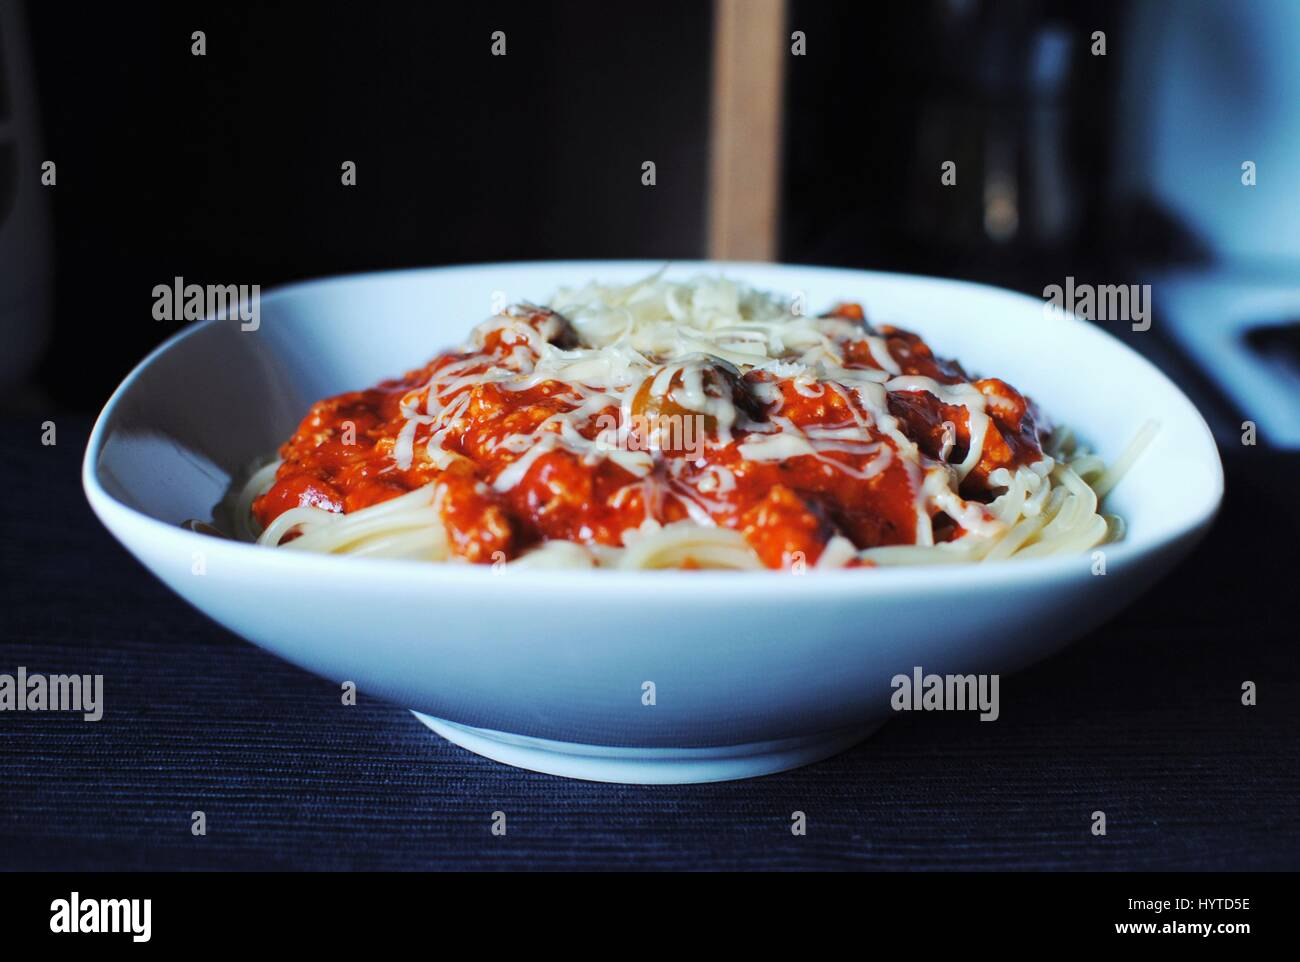 Delicious spaghetti bolognese with olives and mozzarella cheese on dark background. - Stock Image